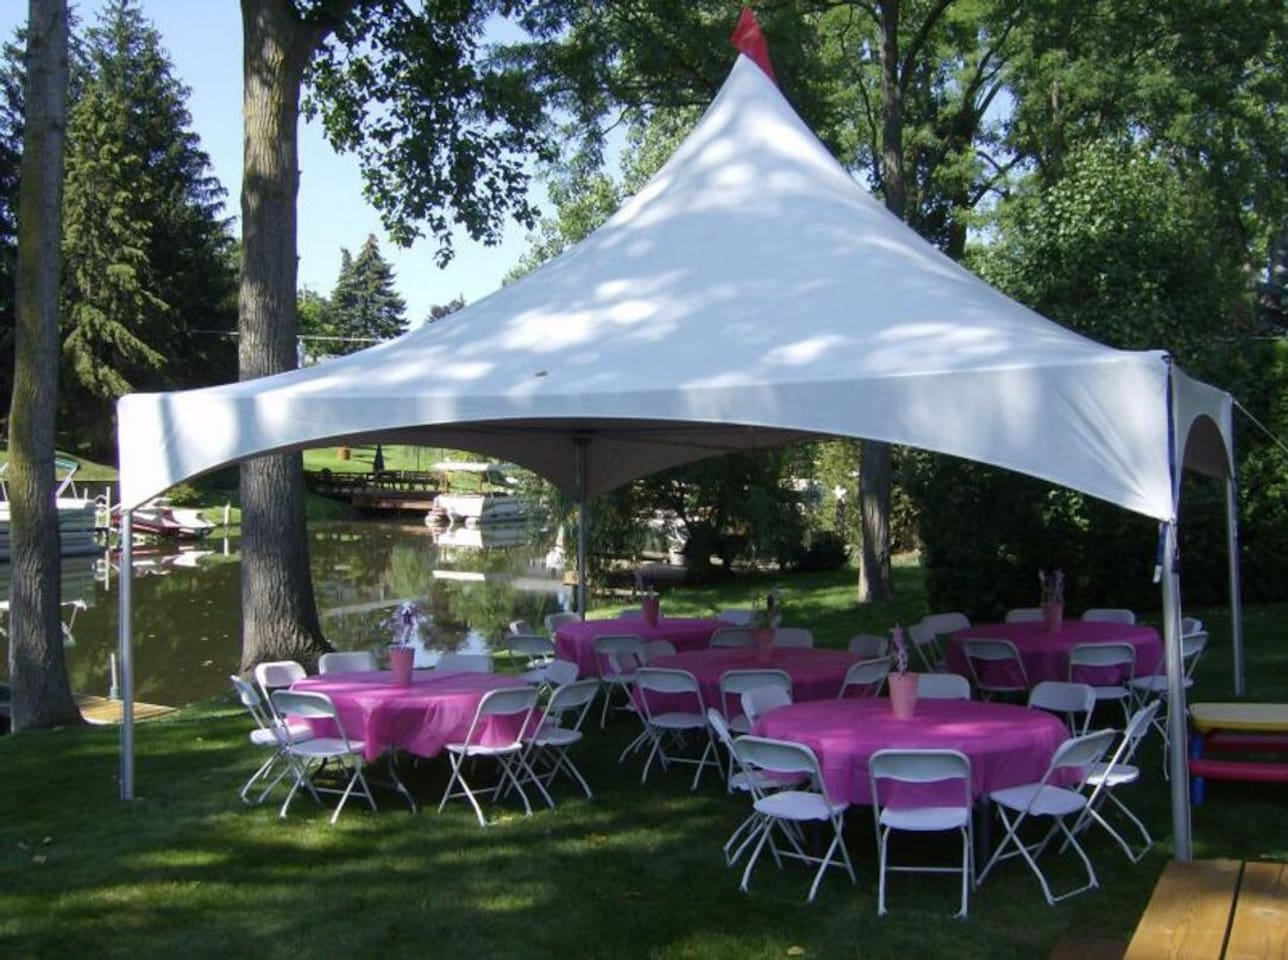 Example of event tent set up